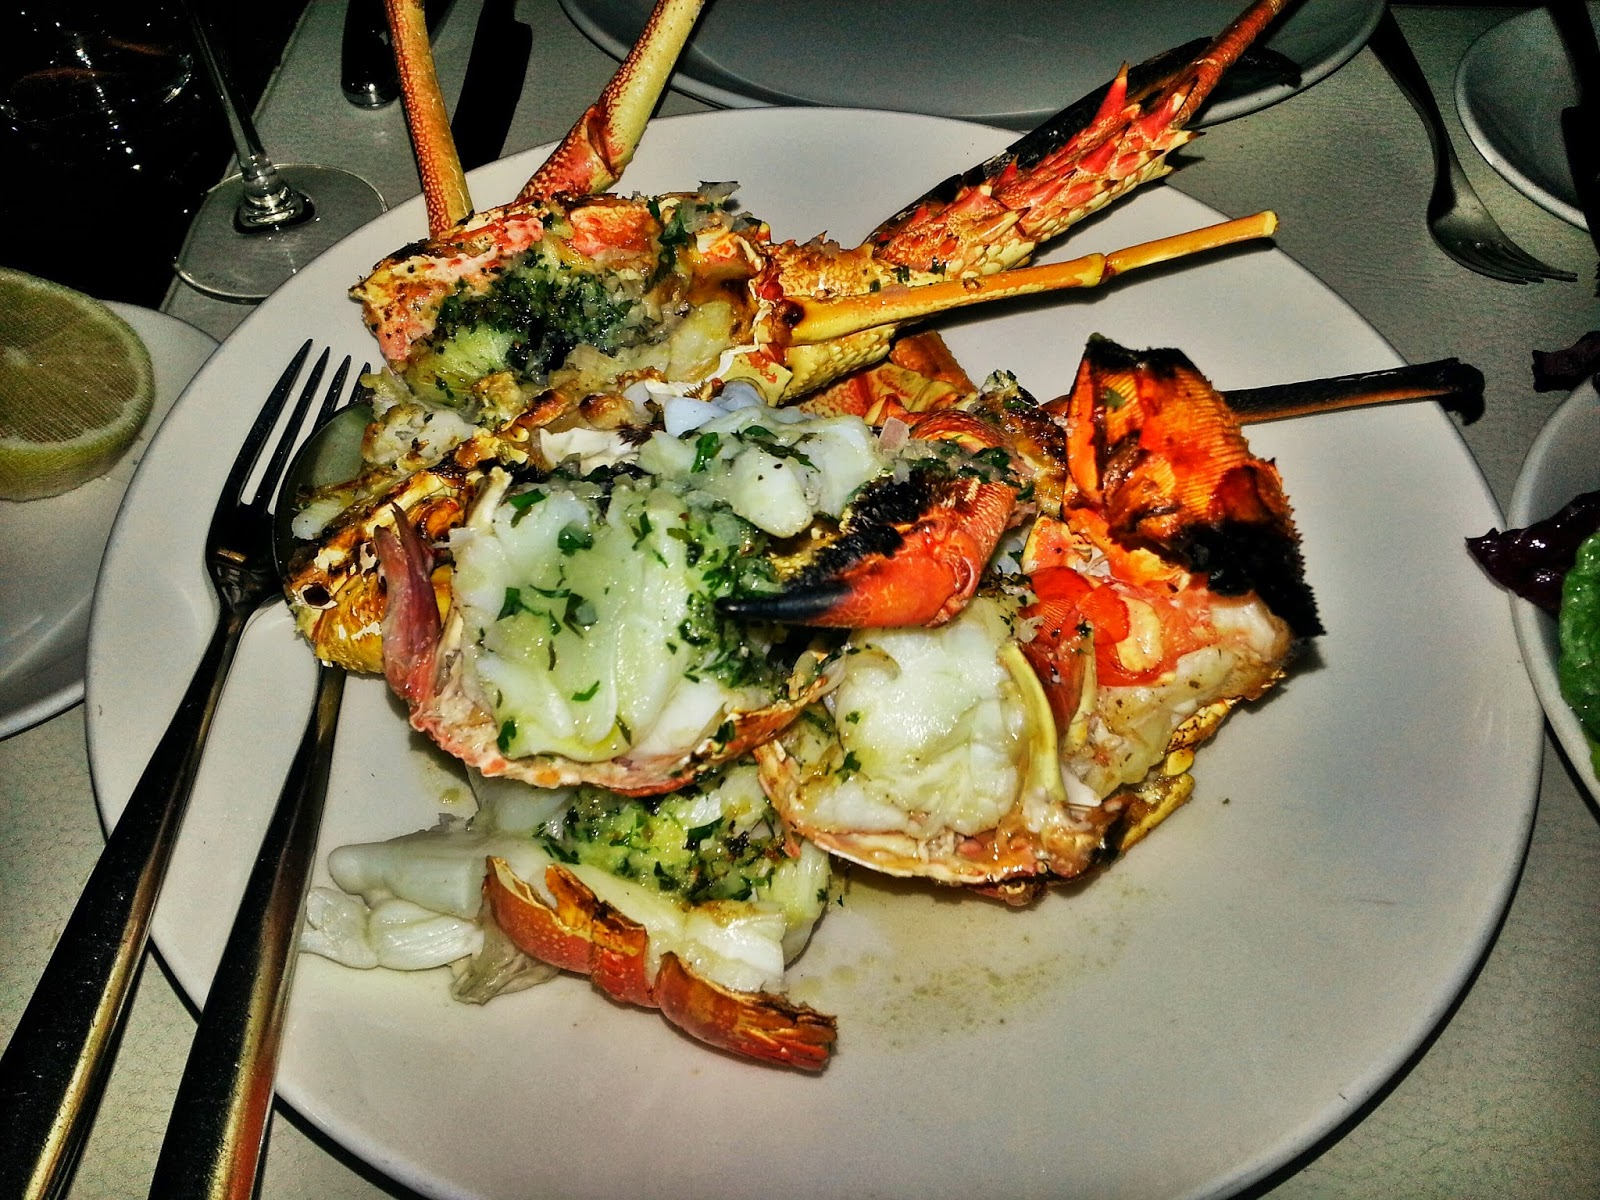 Seafood (Lobster) Dinner @ Rockpool Bar and Grill, Southbank, Melbourne CBD